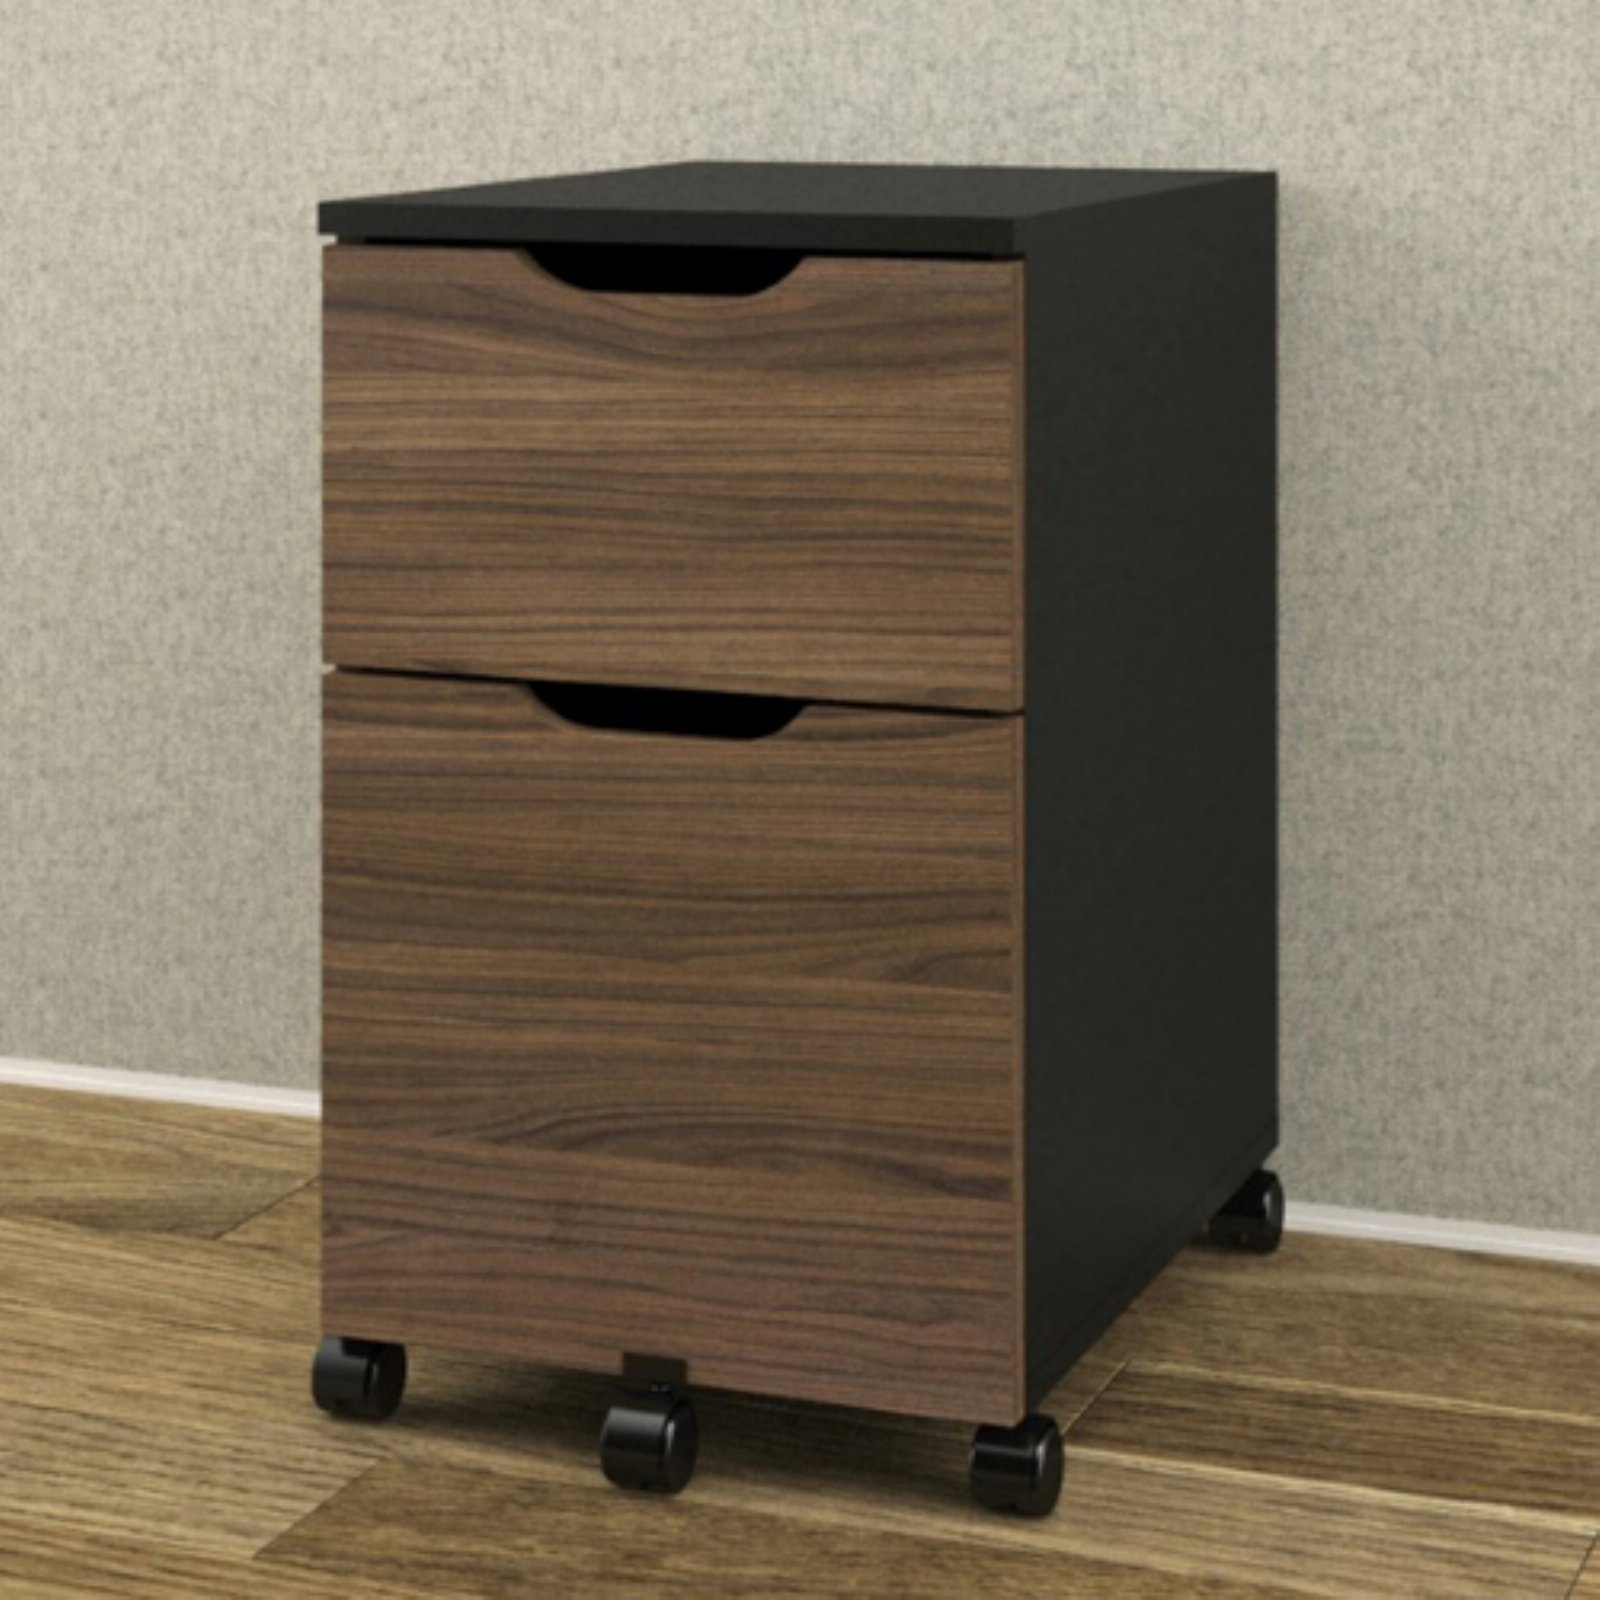 Nexera 2 Drawer Vertical Wood Filing Cabinet, Multple finishes